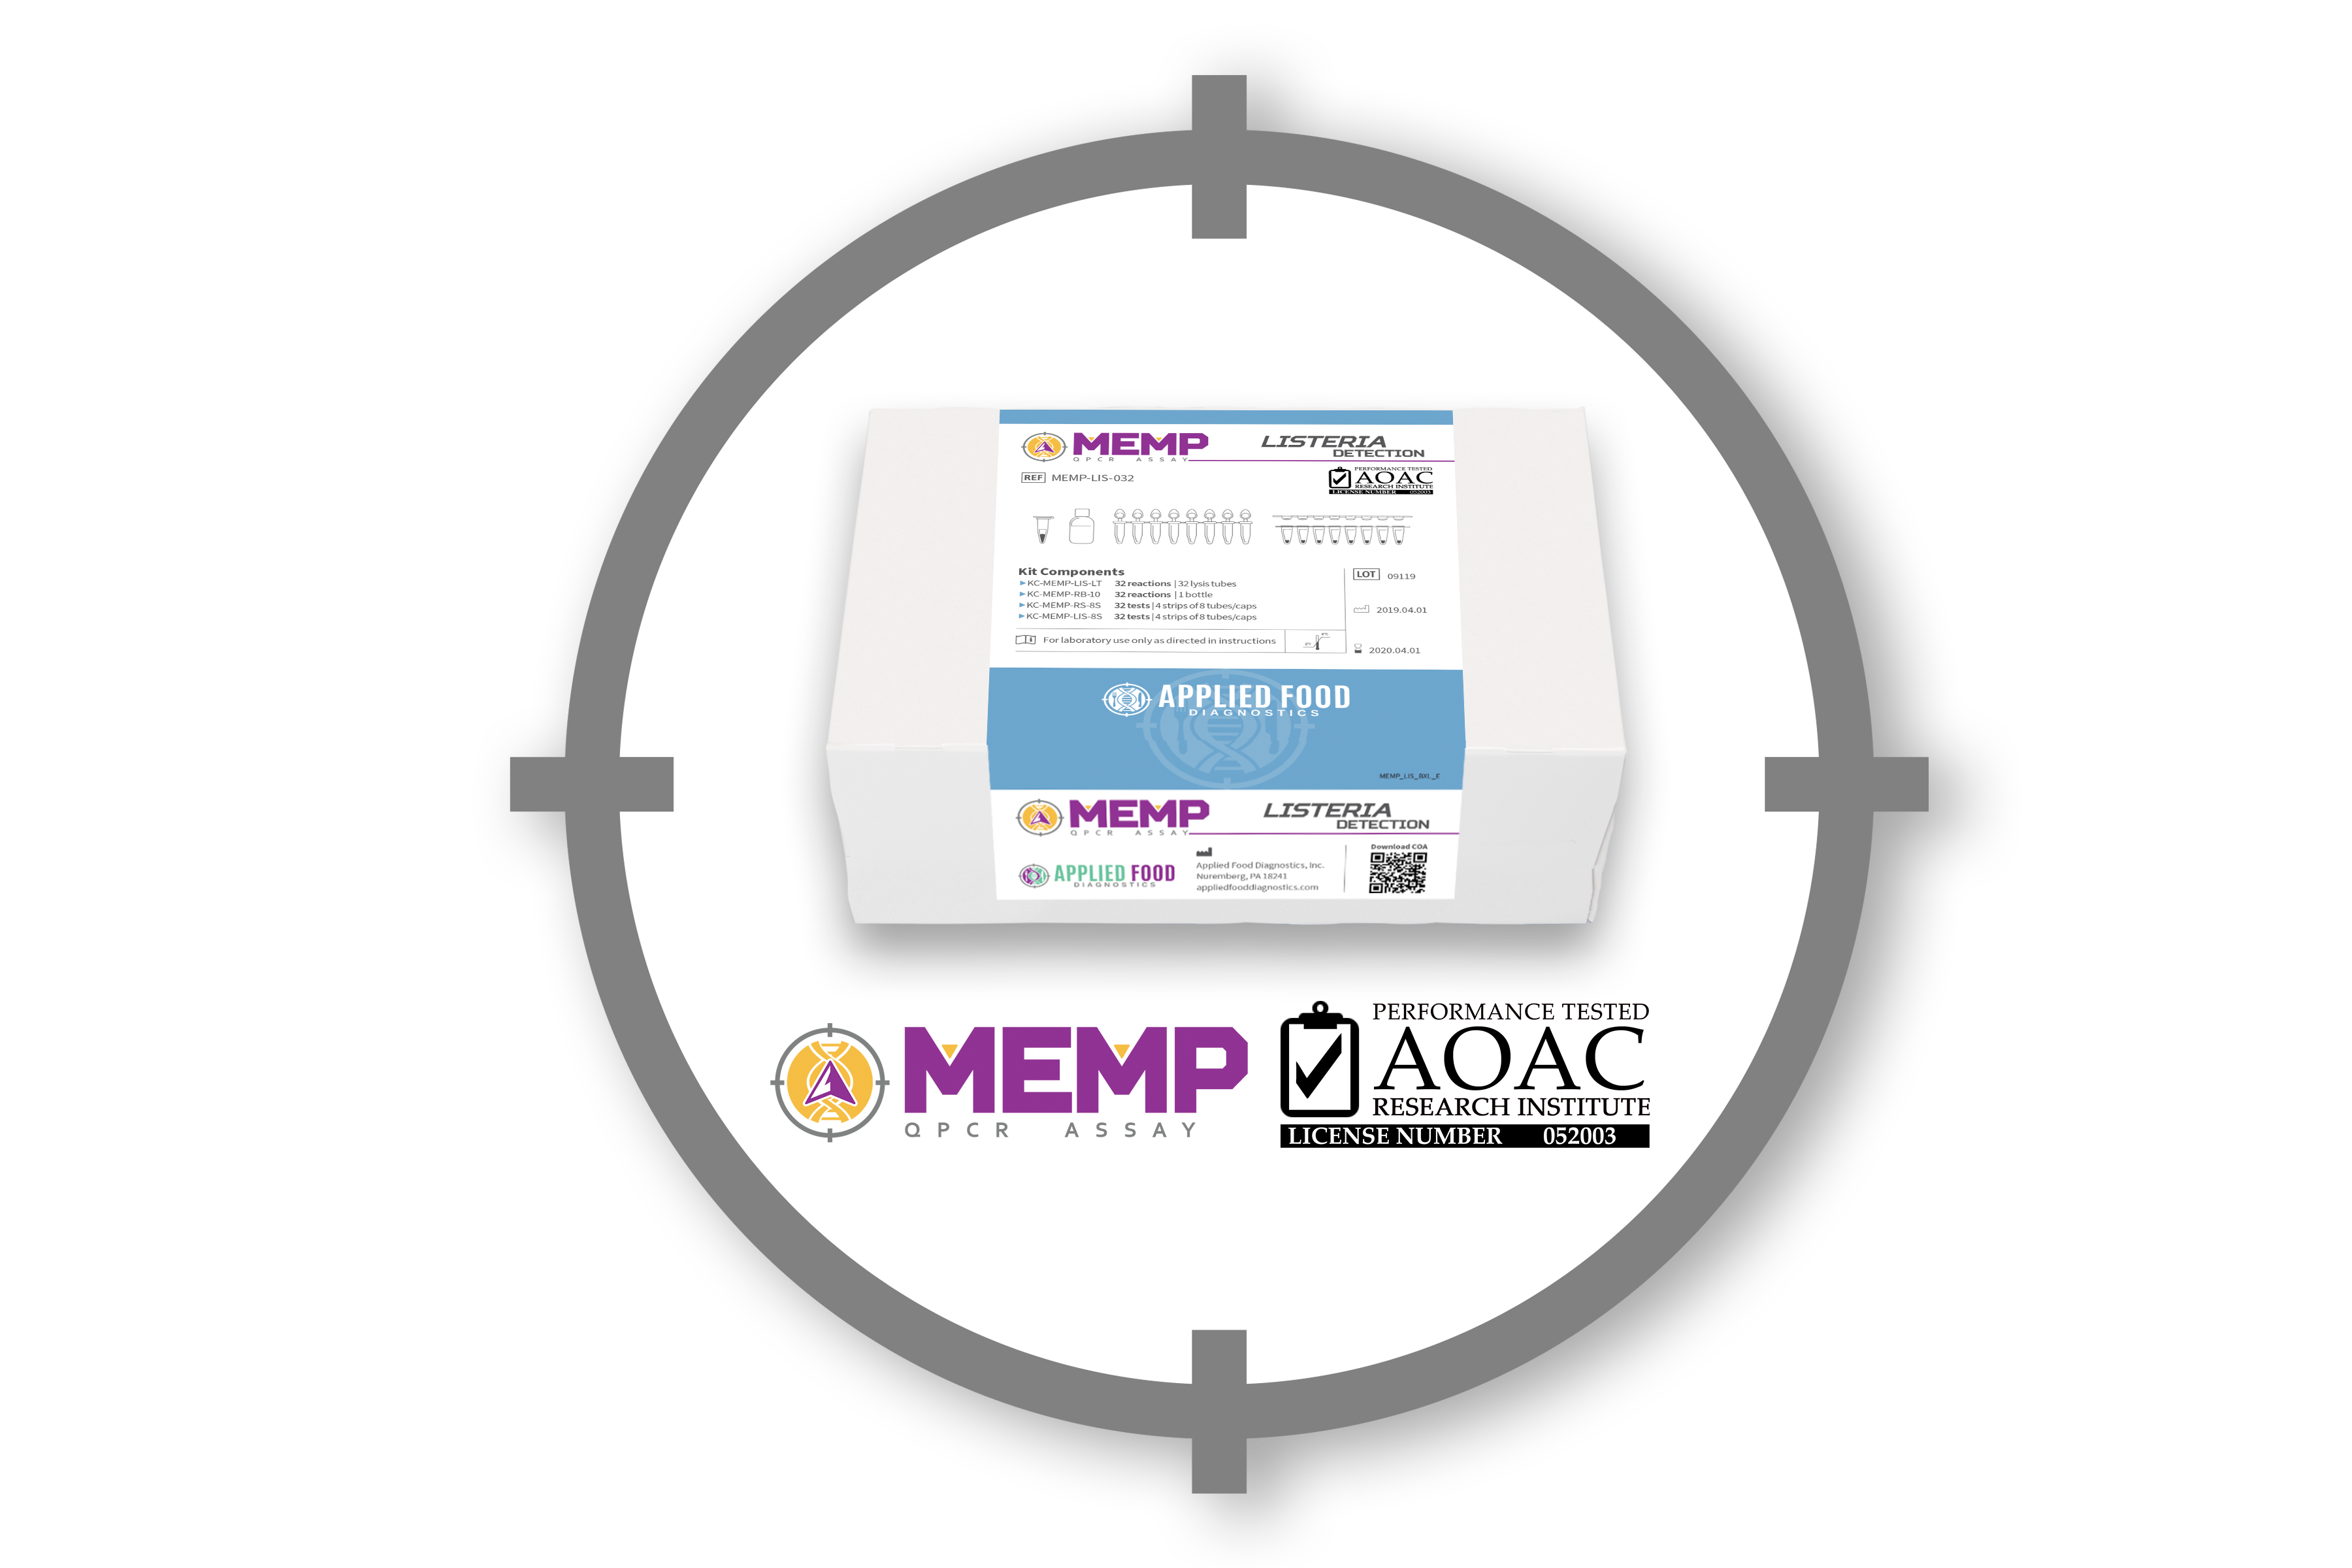 MEMP Kit on display with AOAC PTM and MEMP logo